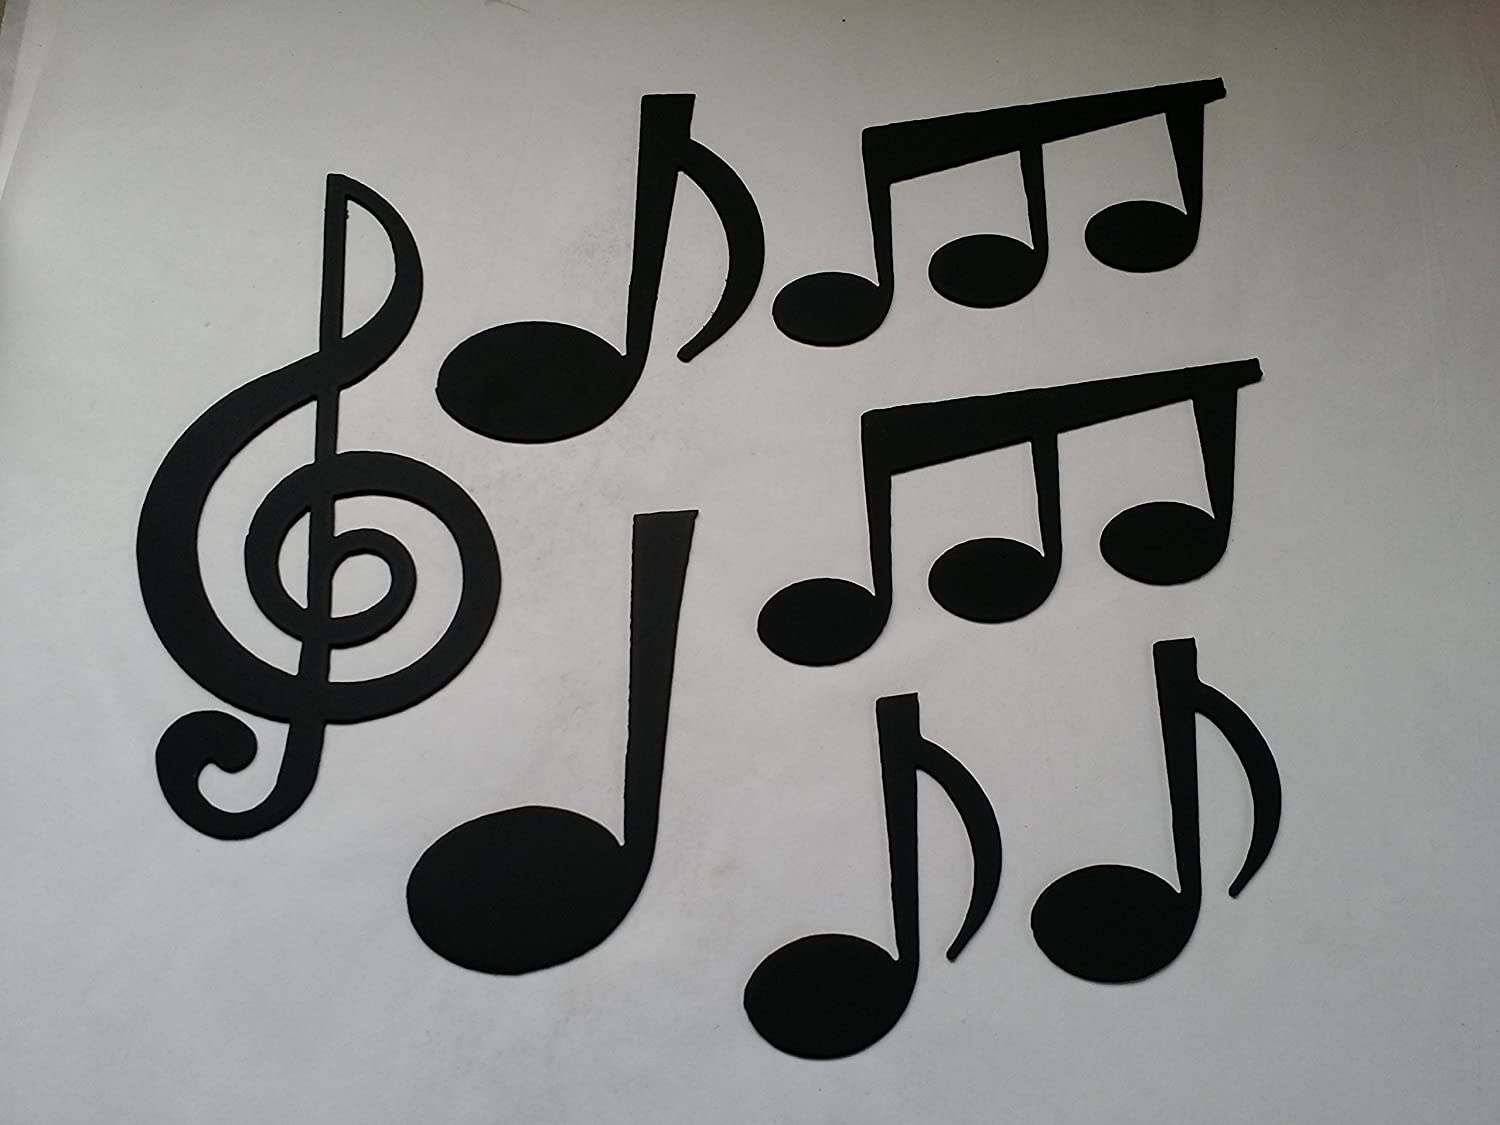 Amazon musical notes set of 7 metal wall art music decor amazon musical notes set of 7 metal wall art music decor home kitchen amipublicfo Image collections